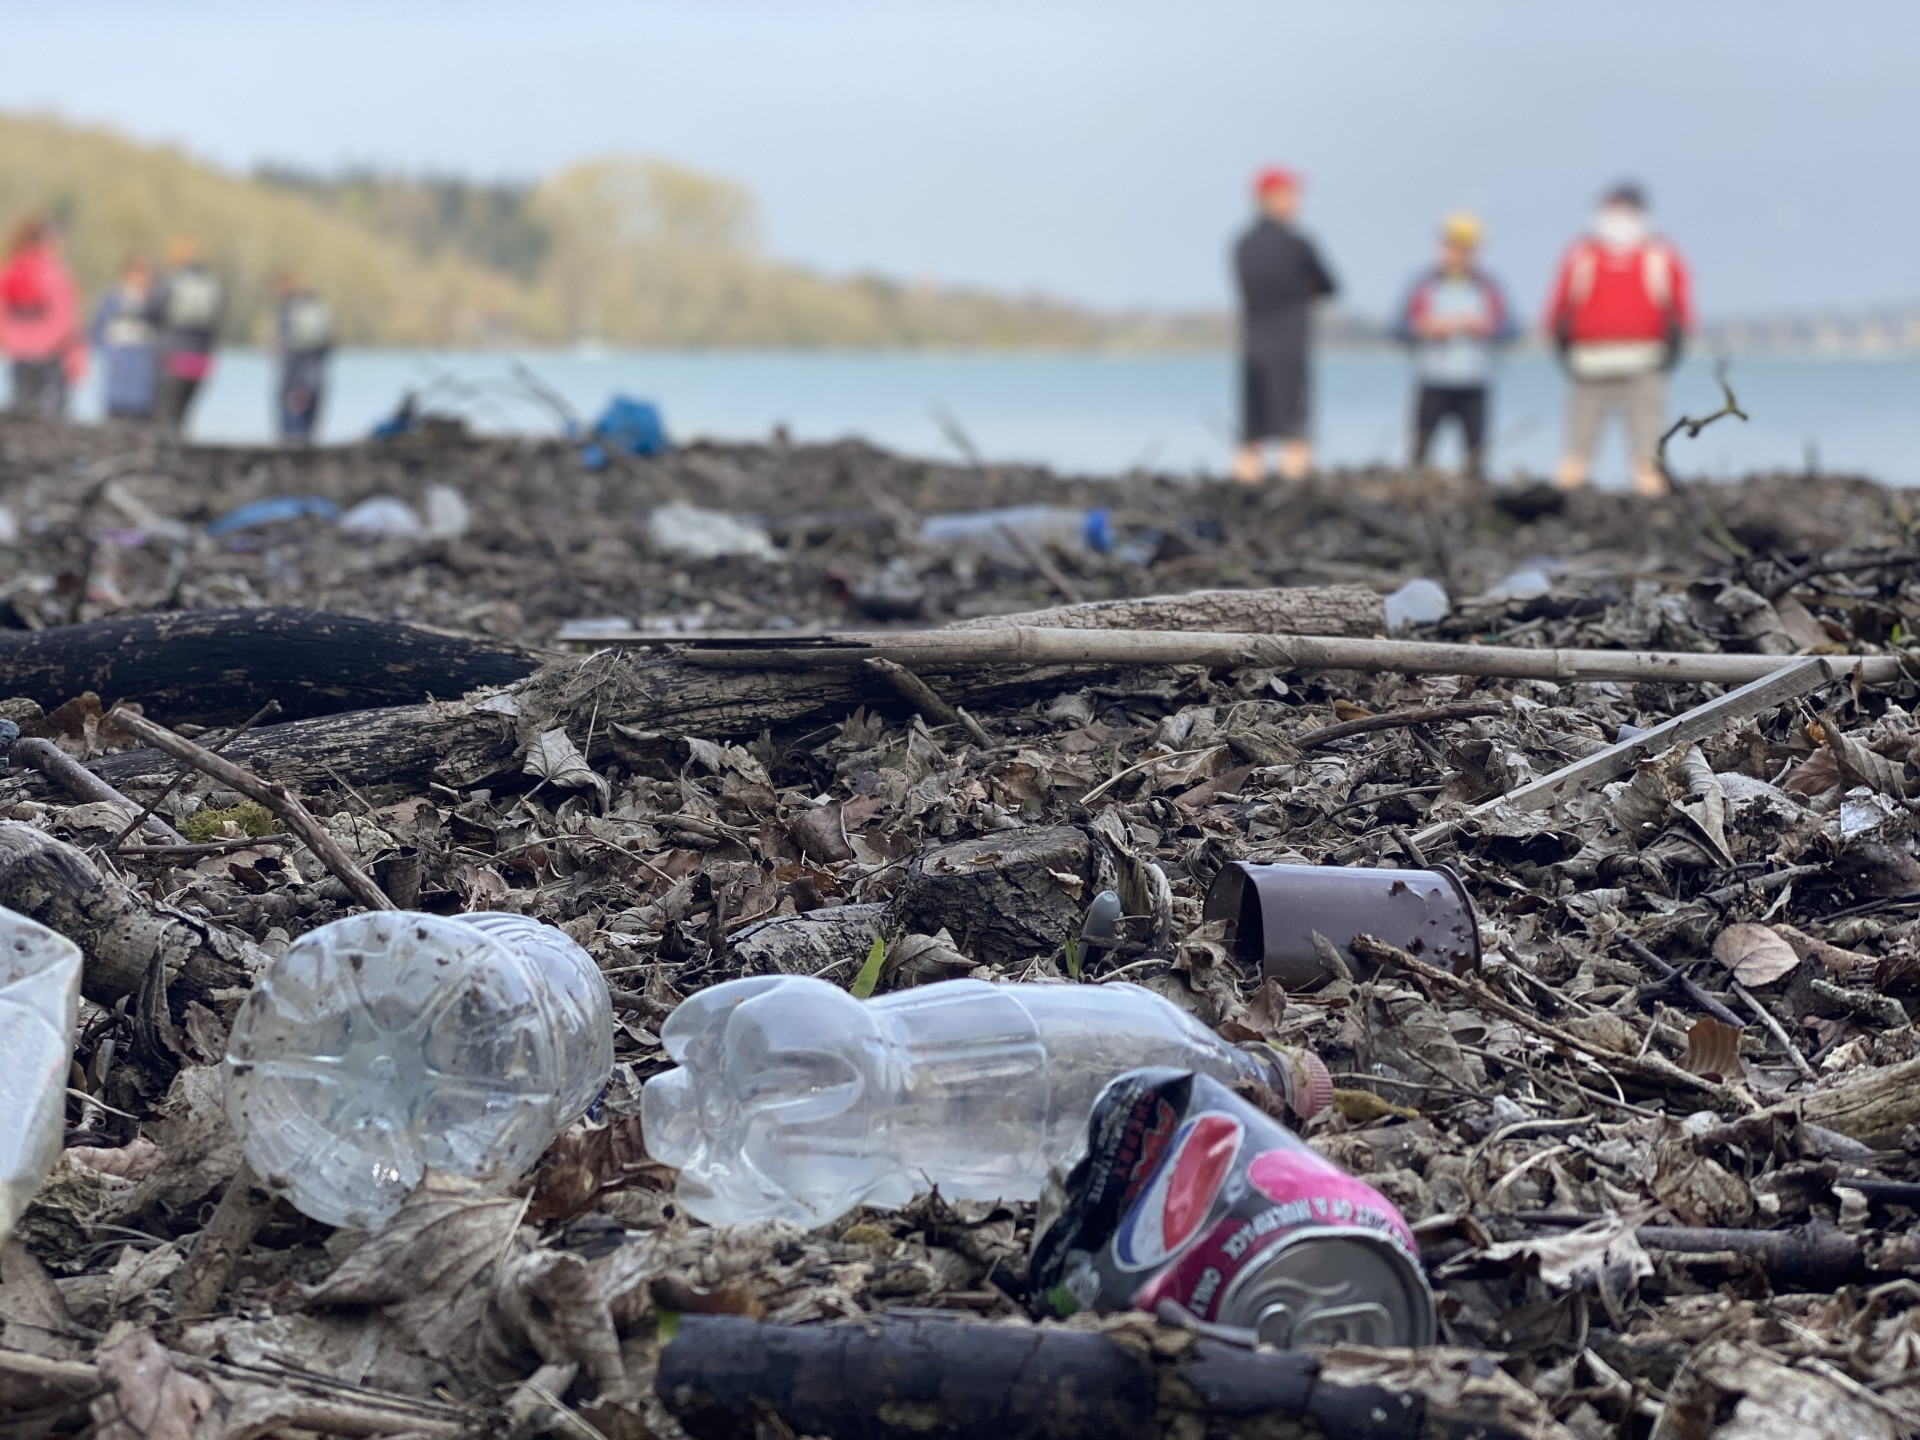 Plastic bottles and tins lying on a beach with kayakers in the background.